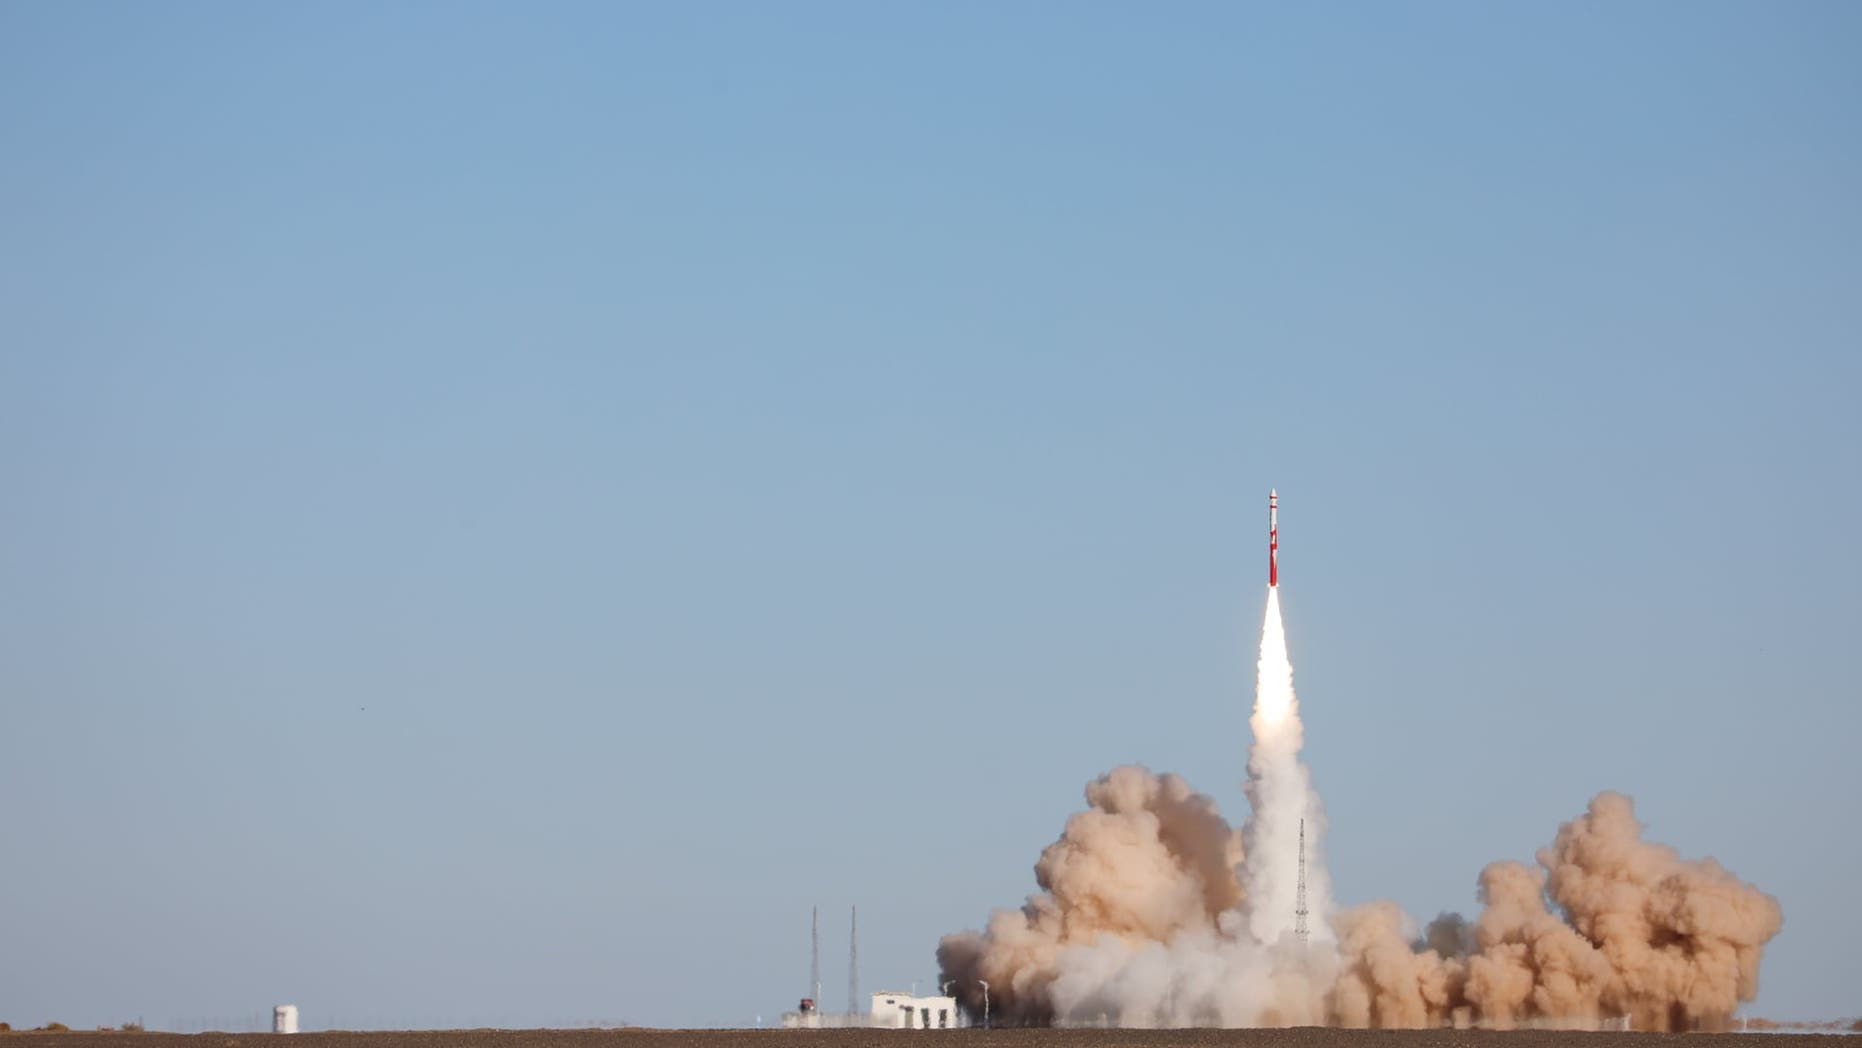 China's first private carrier rocket ZQ-1 blasts off in Jiuquan, Gansu province, before failing.